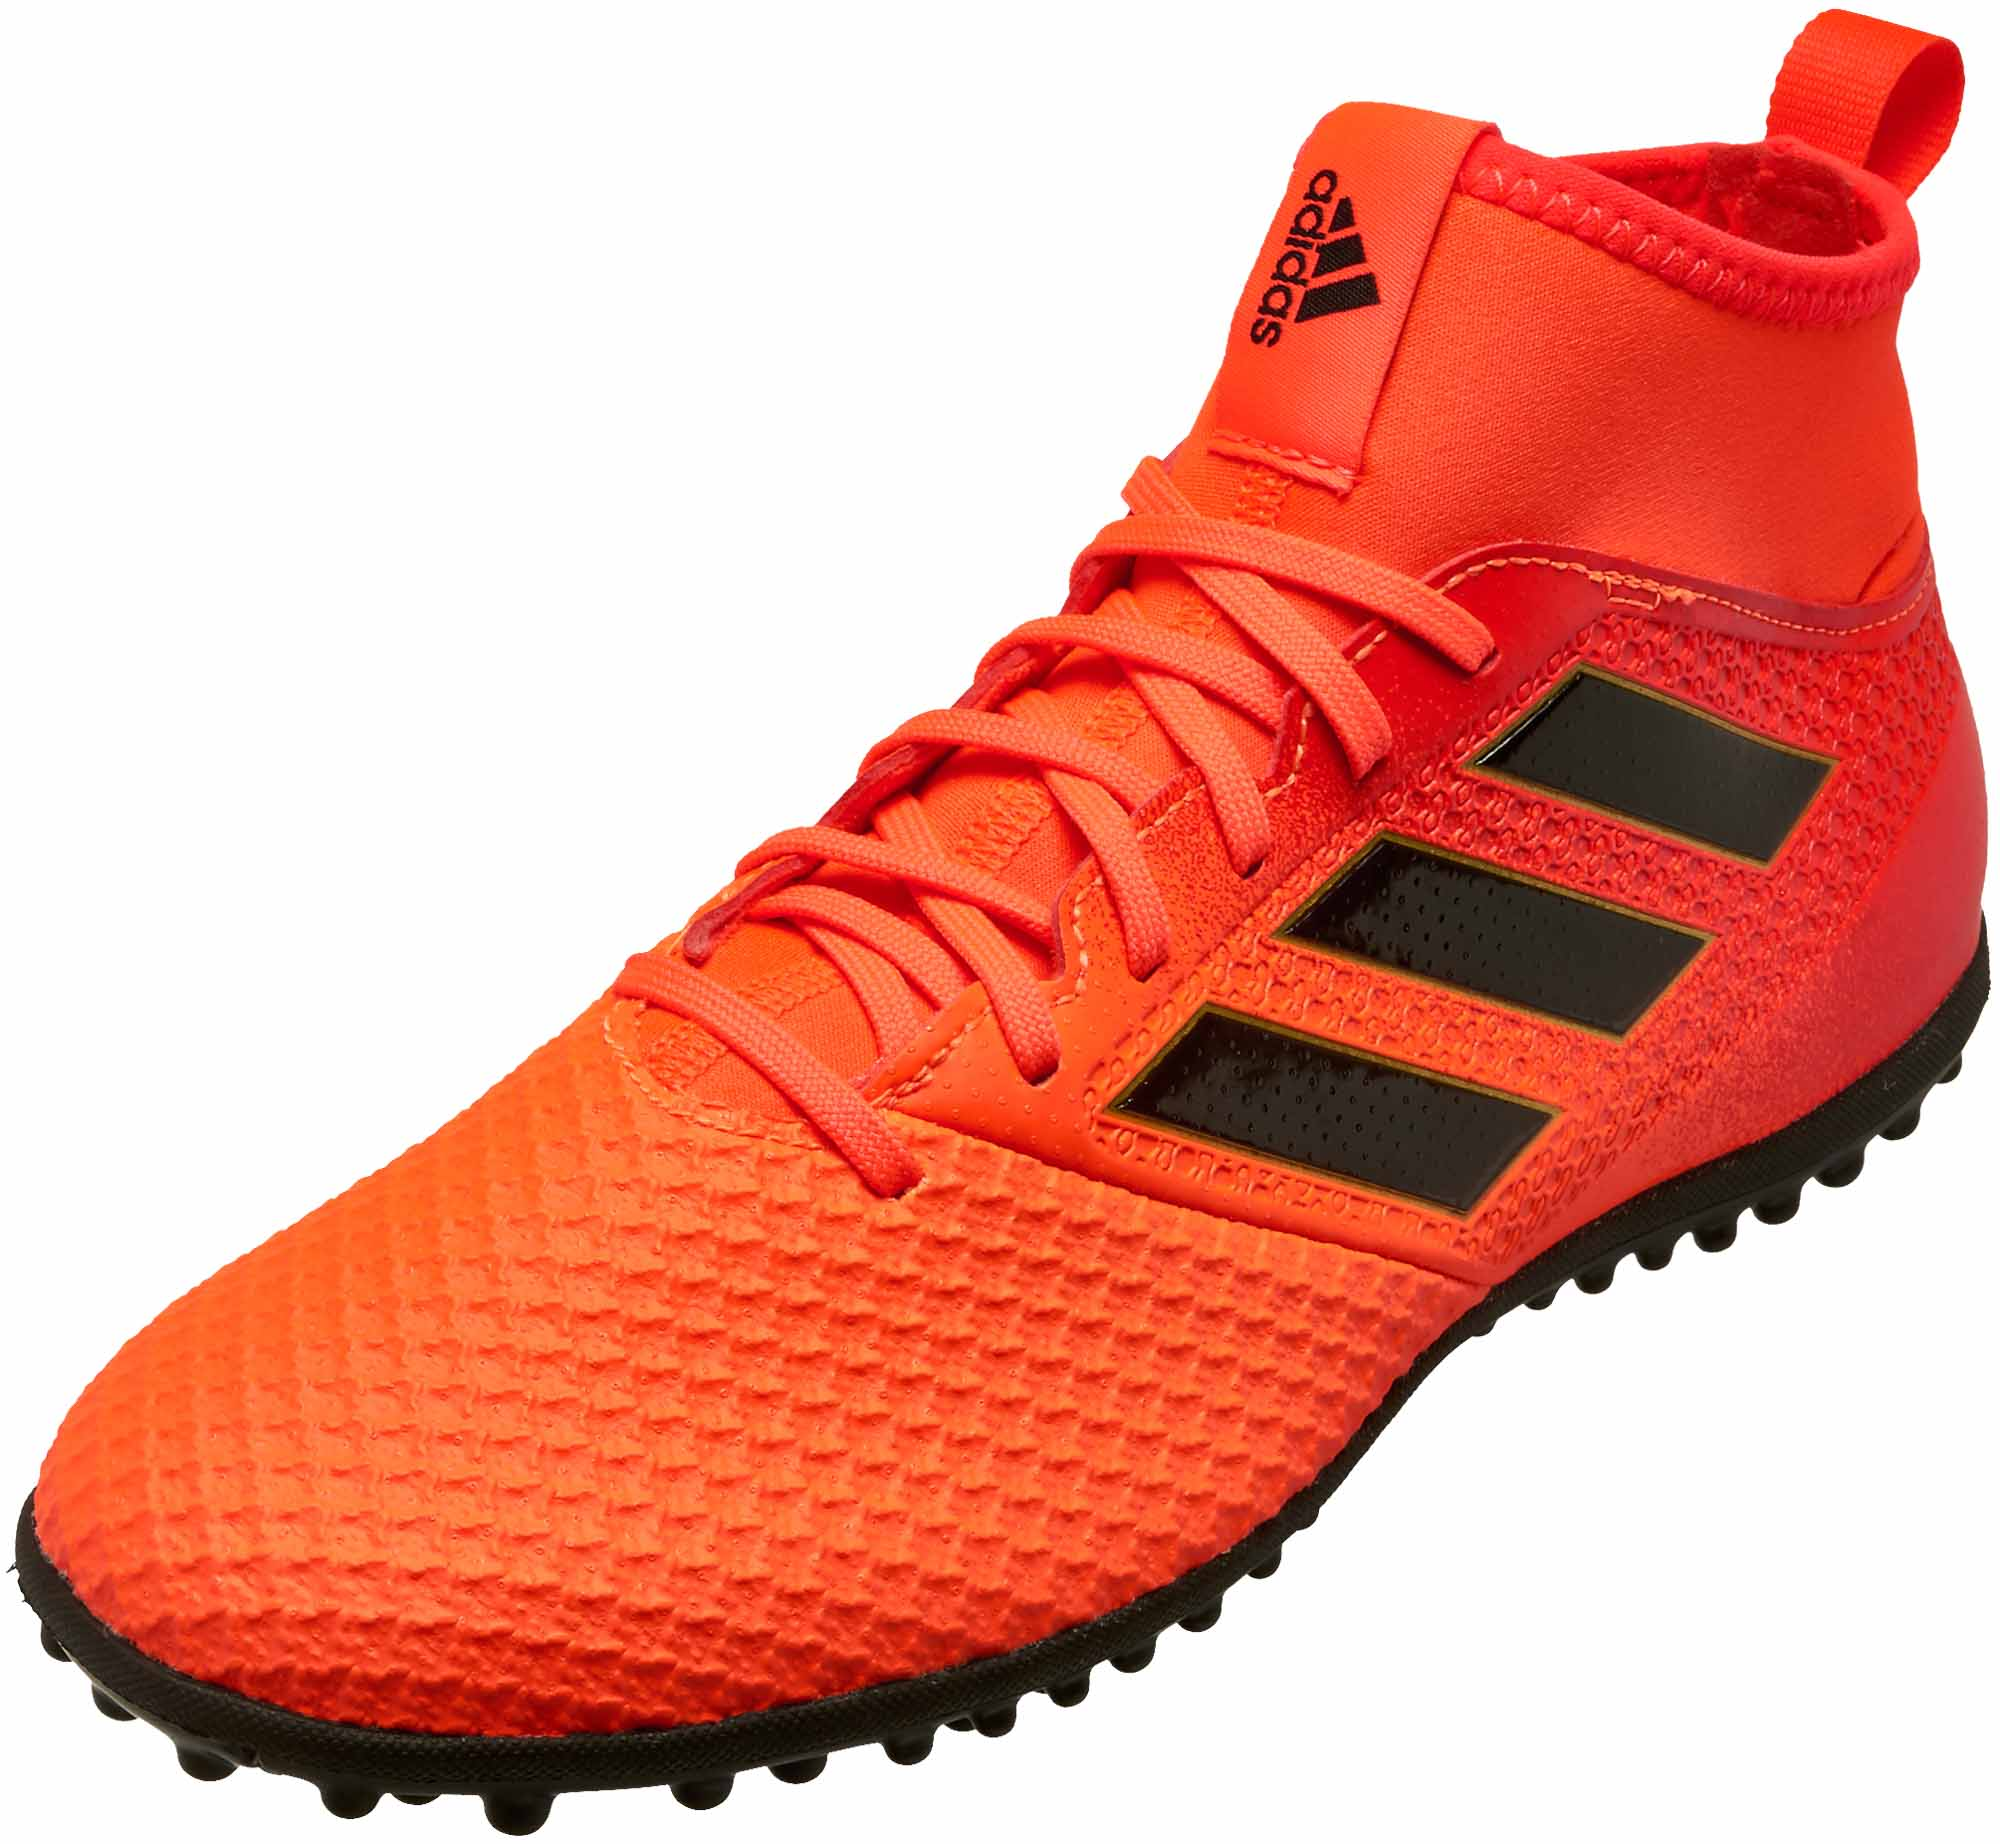 size 40 a551b d75ad adidas ACE Tango 17.3 TF - Solar Red & Solar Orange ...